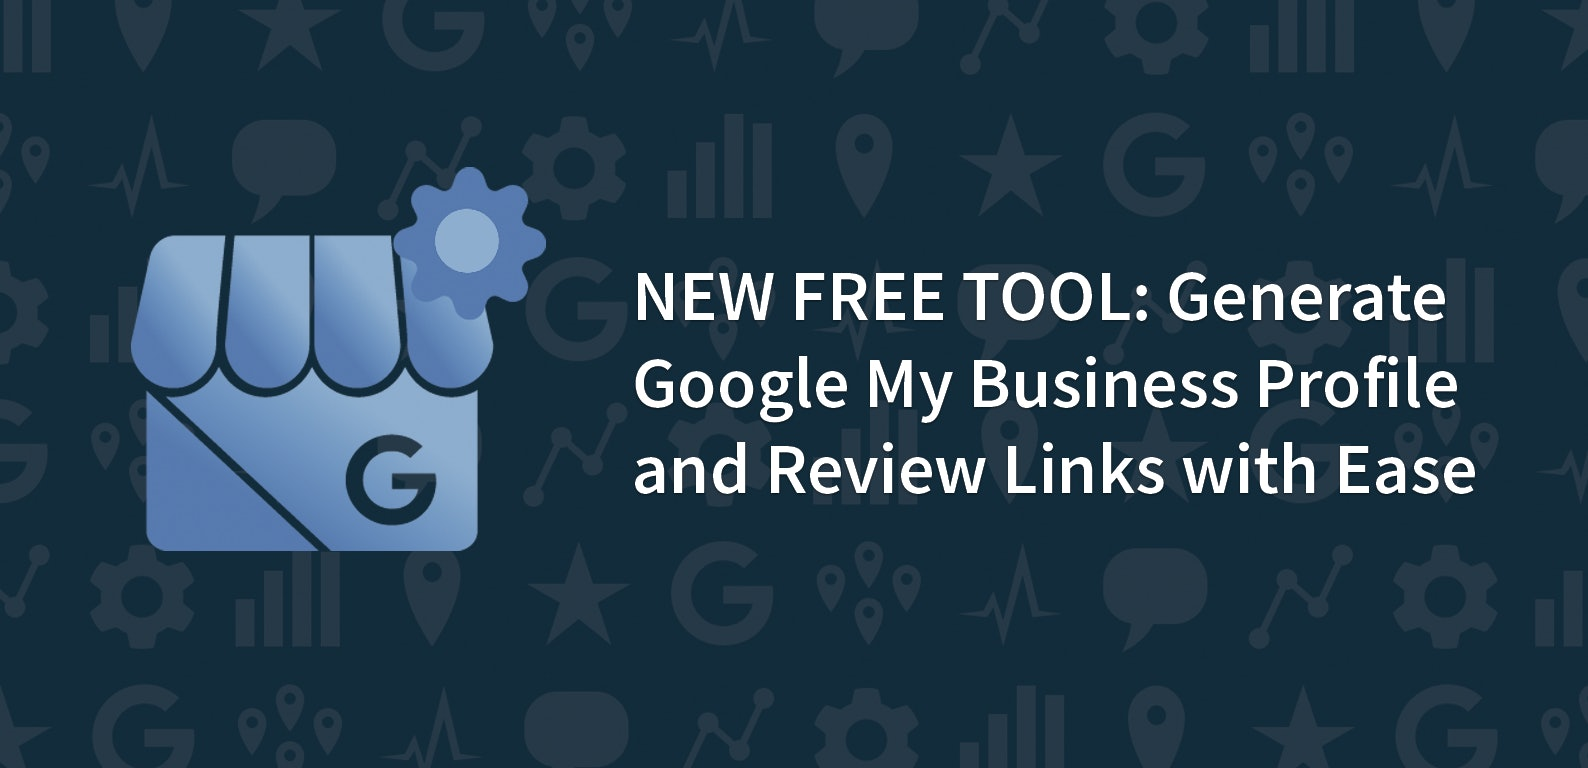 NEW FREE TOOL: Generate Google My Business Profile and